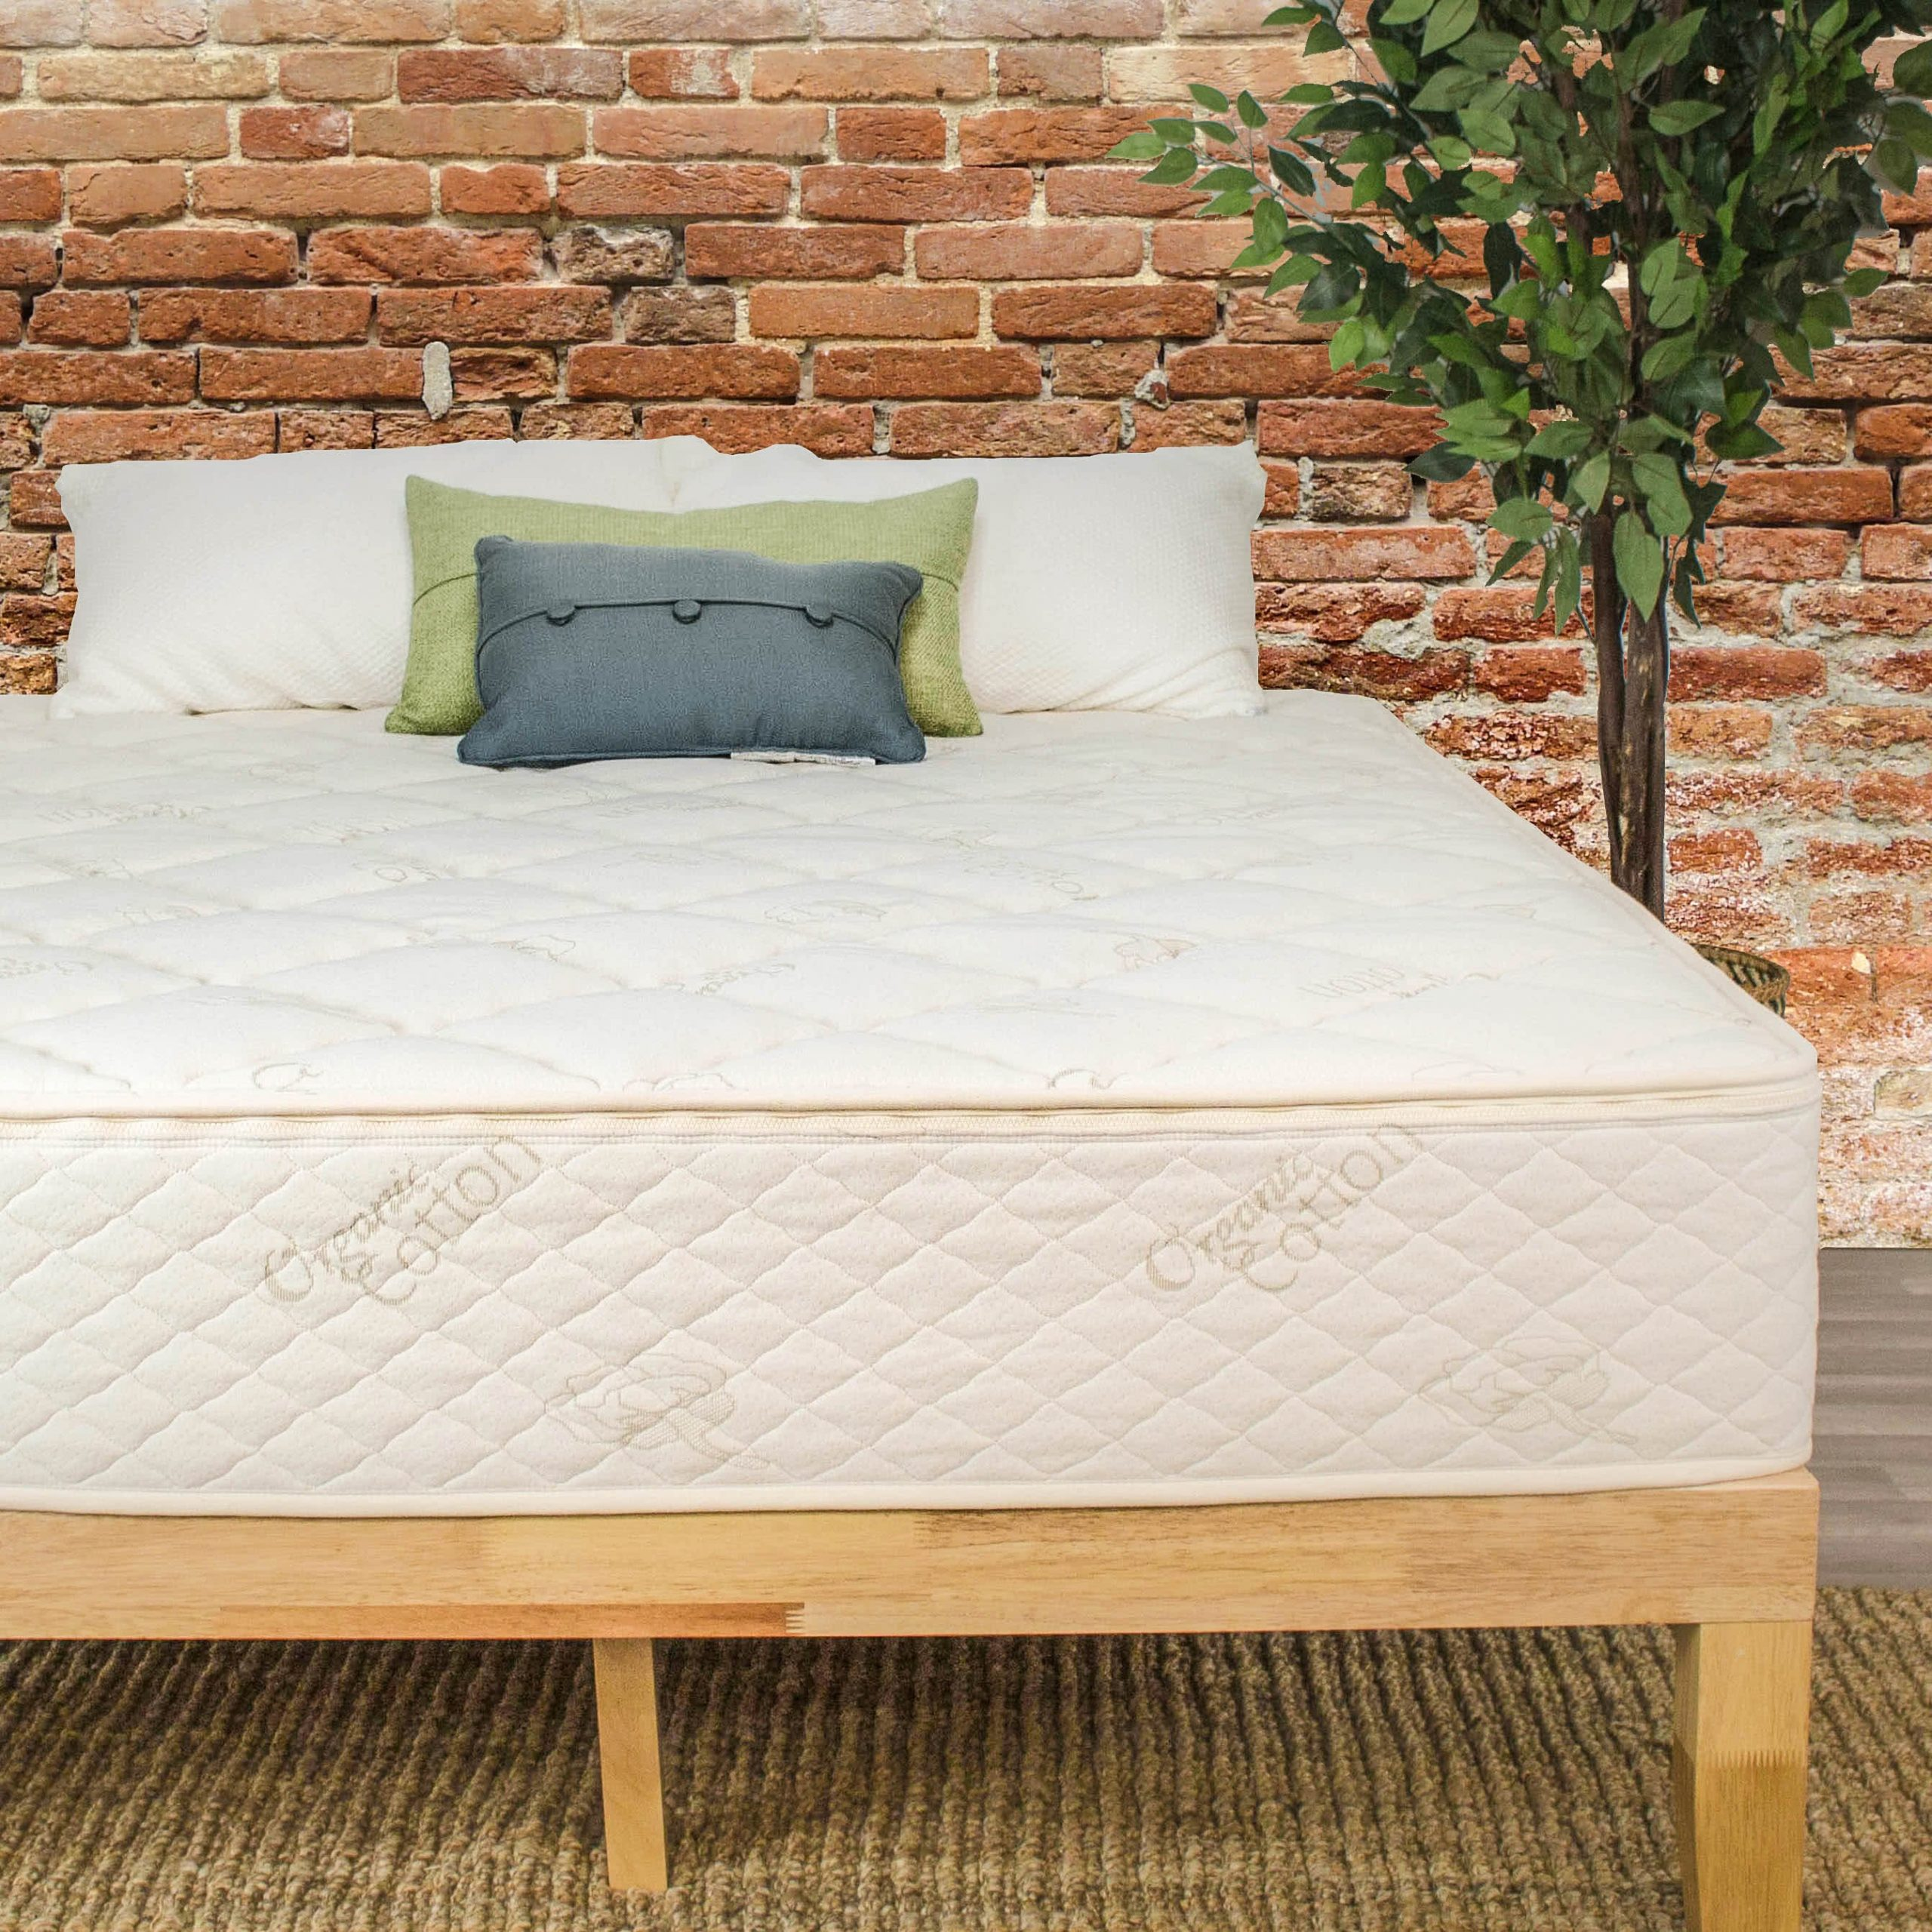 Sleep Ez organic mattress